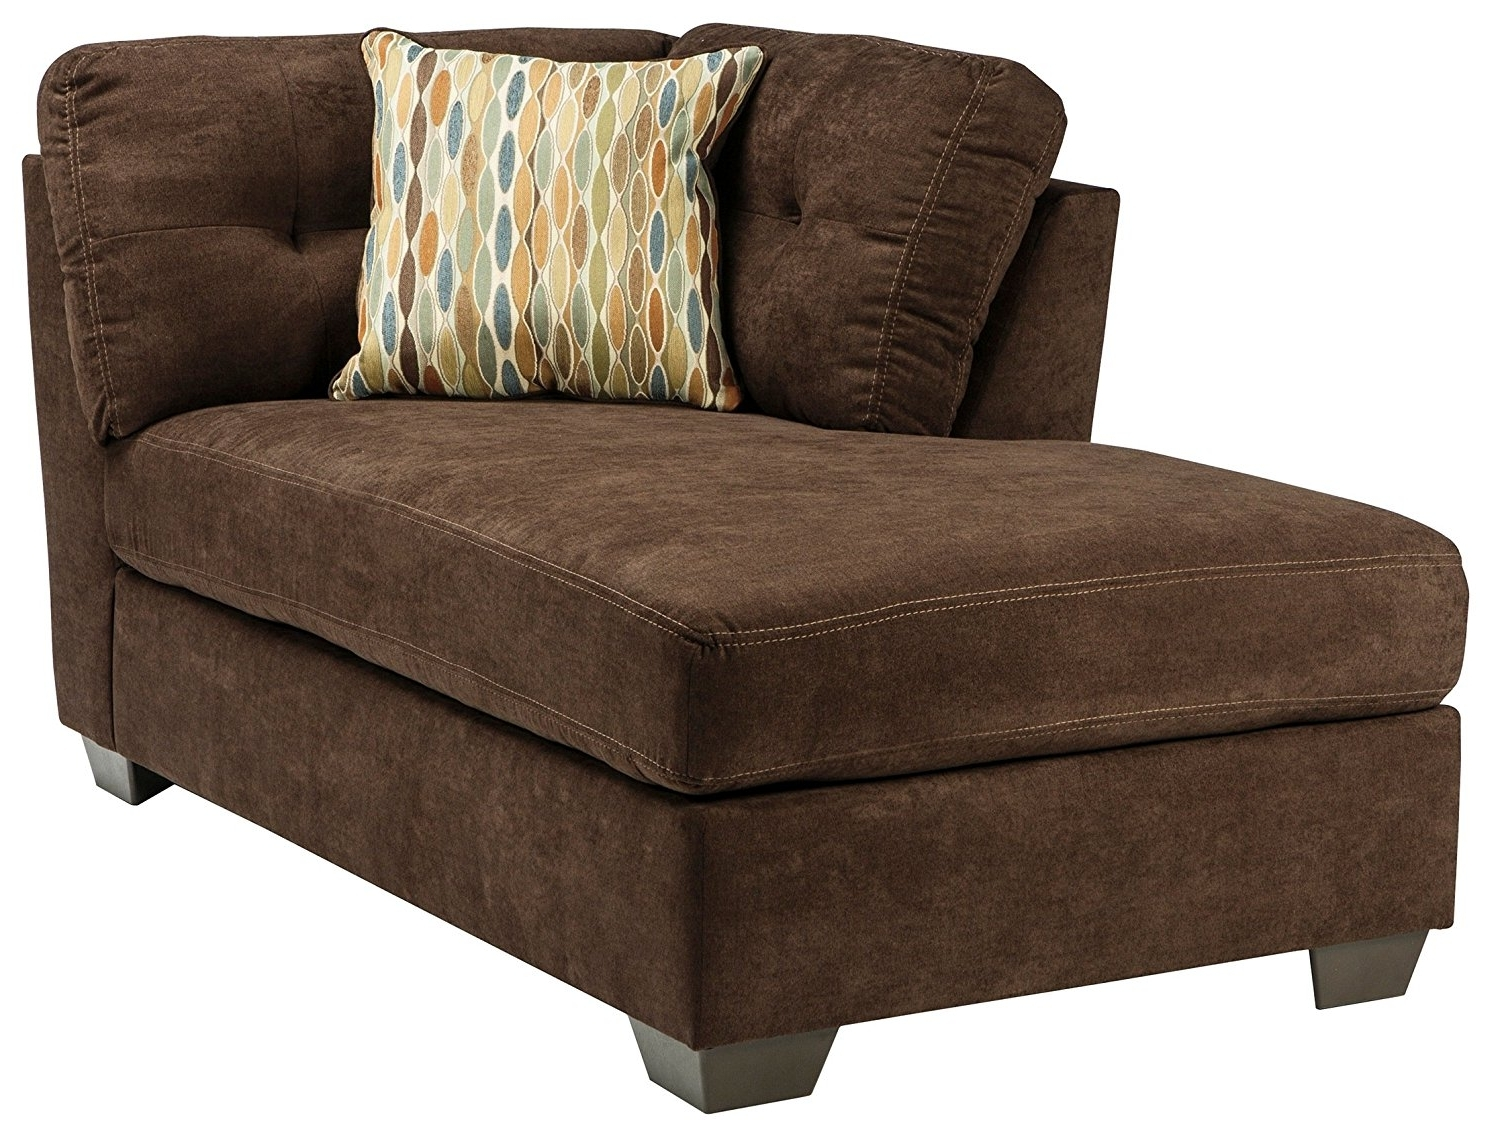 Ashley Furniture Chaise Lounges Inside 2017 Amazon: Ashley Delta City Left Corner Chaise Lounge In (View 6 of 15)